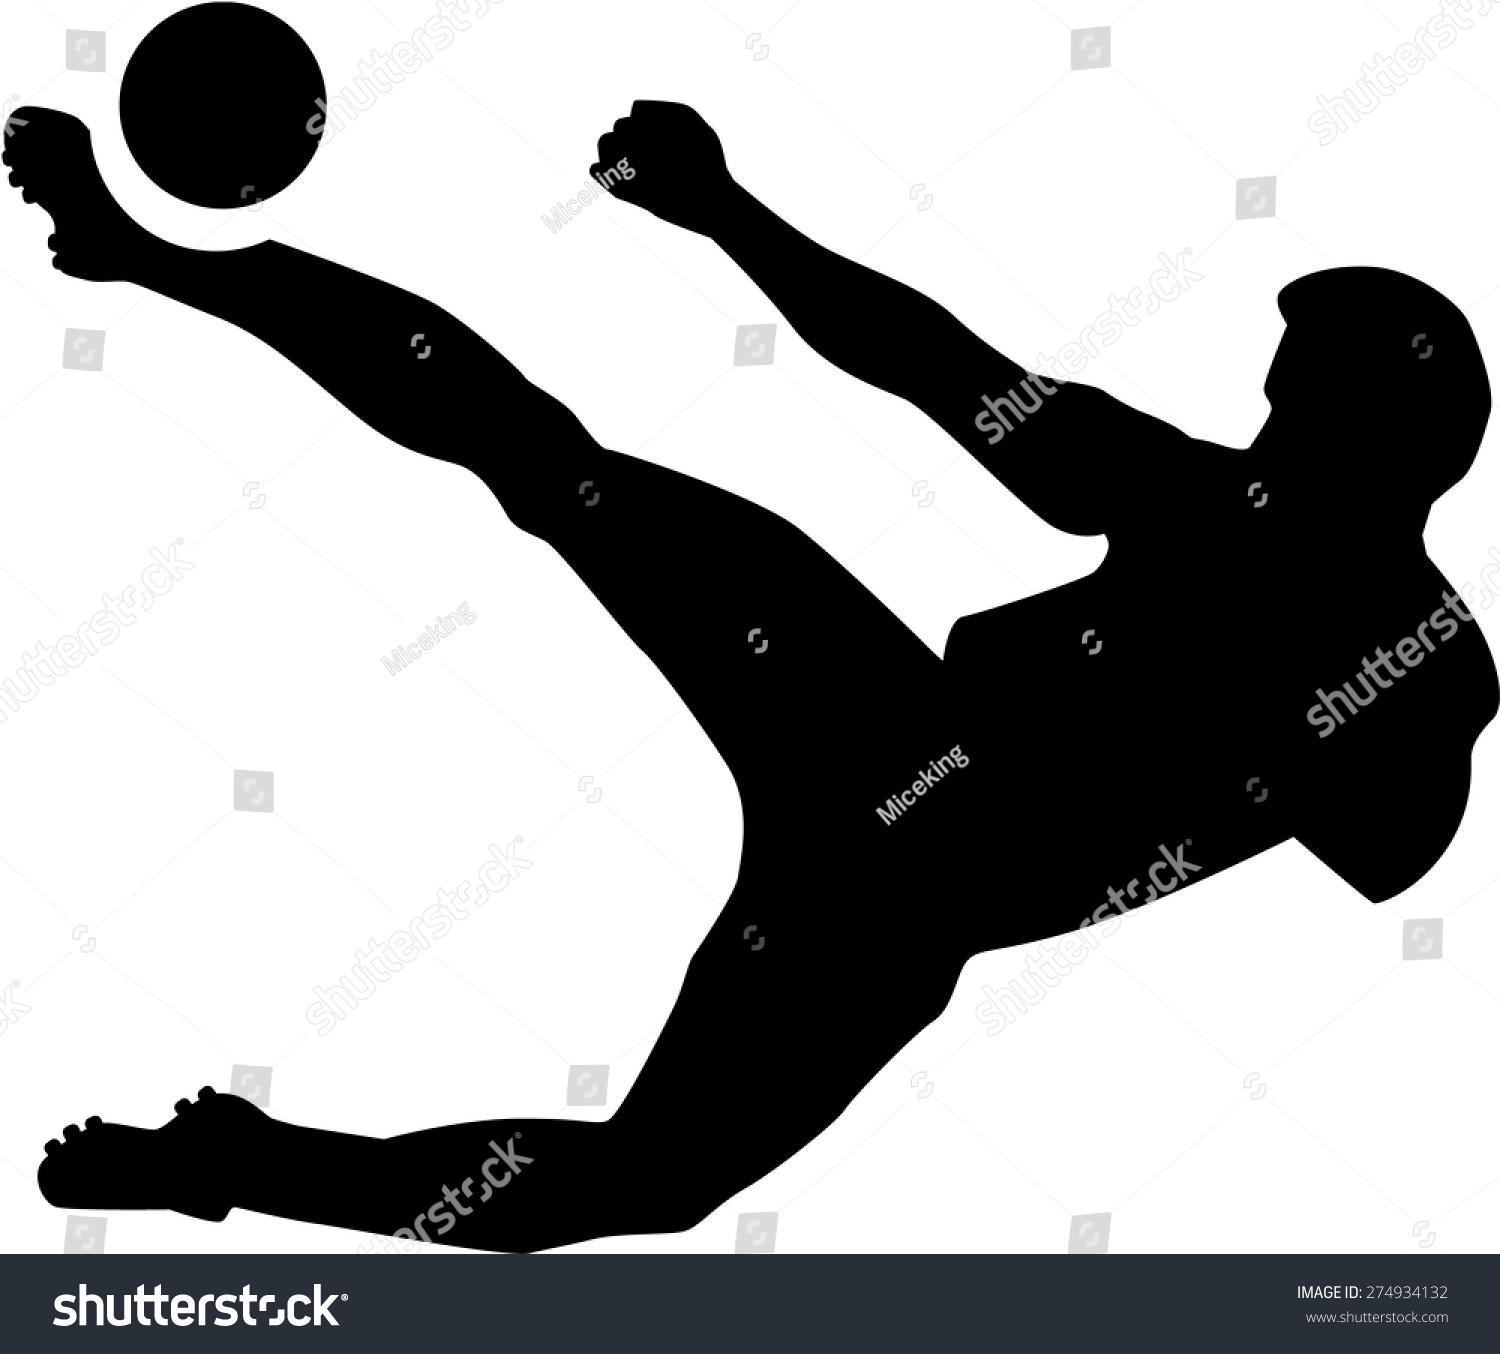 Soccer player silhouette bicycle kick